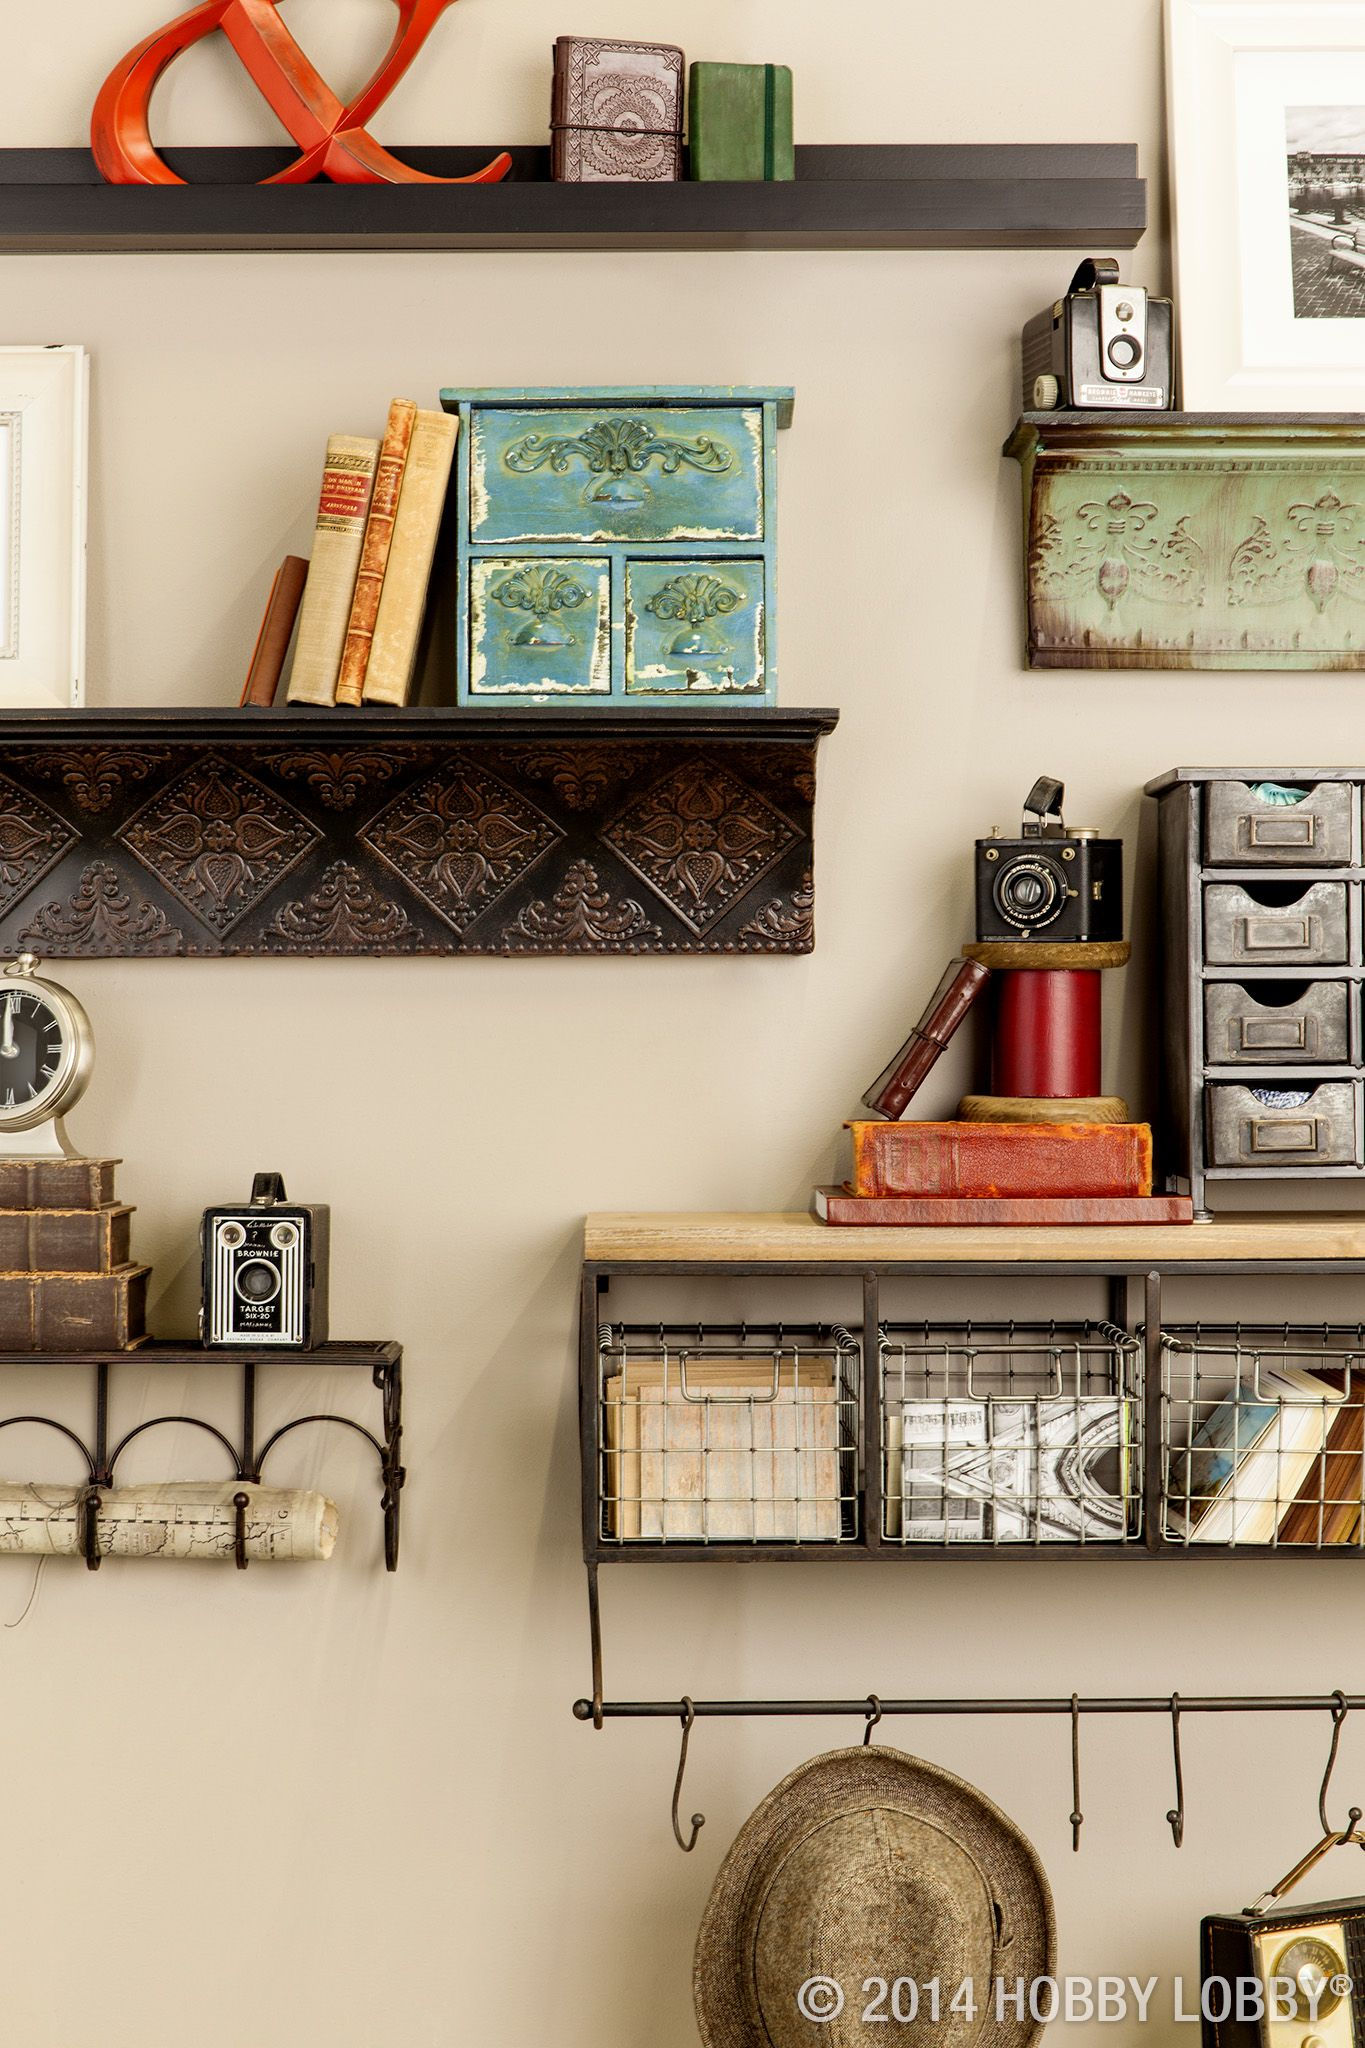 Modern storage area - Add Easy To Install Shelves To Create An Open Storage Area For Displaying Art